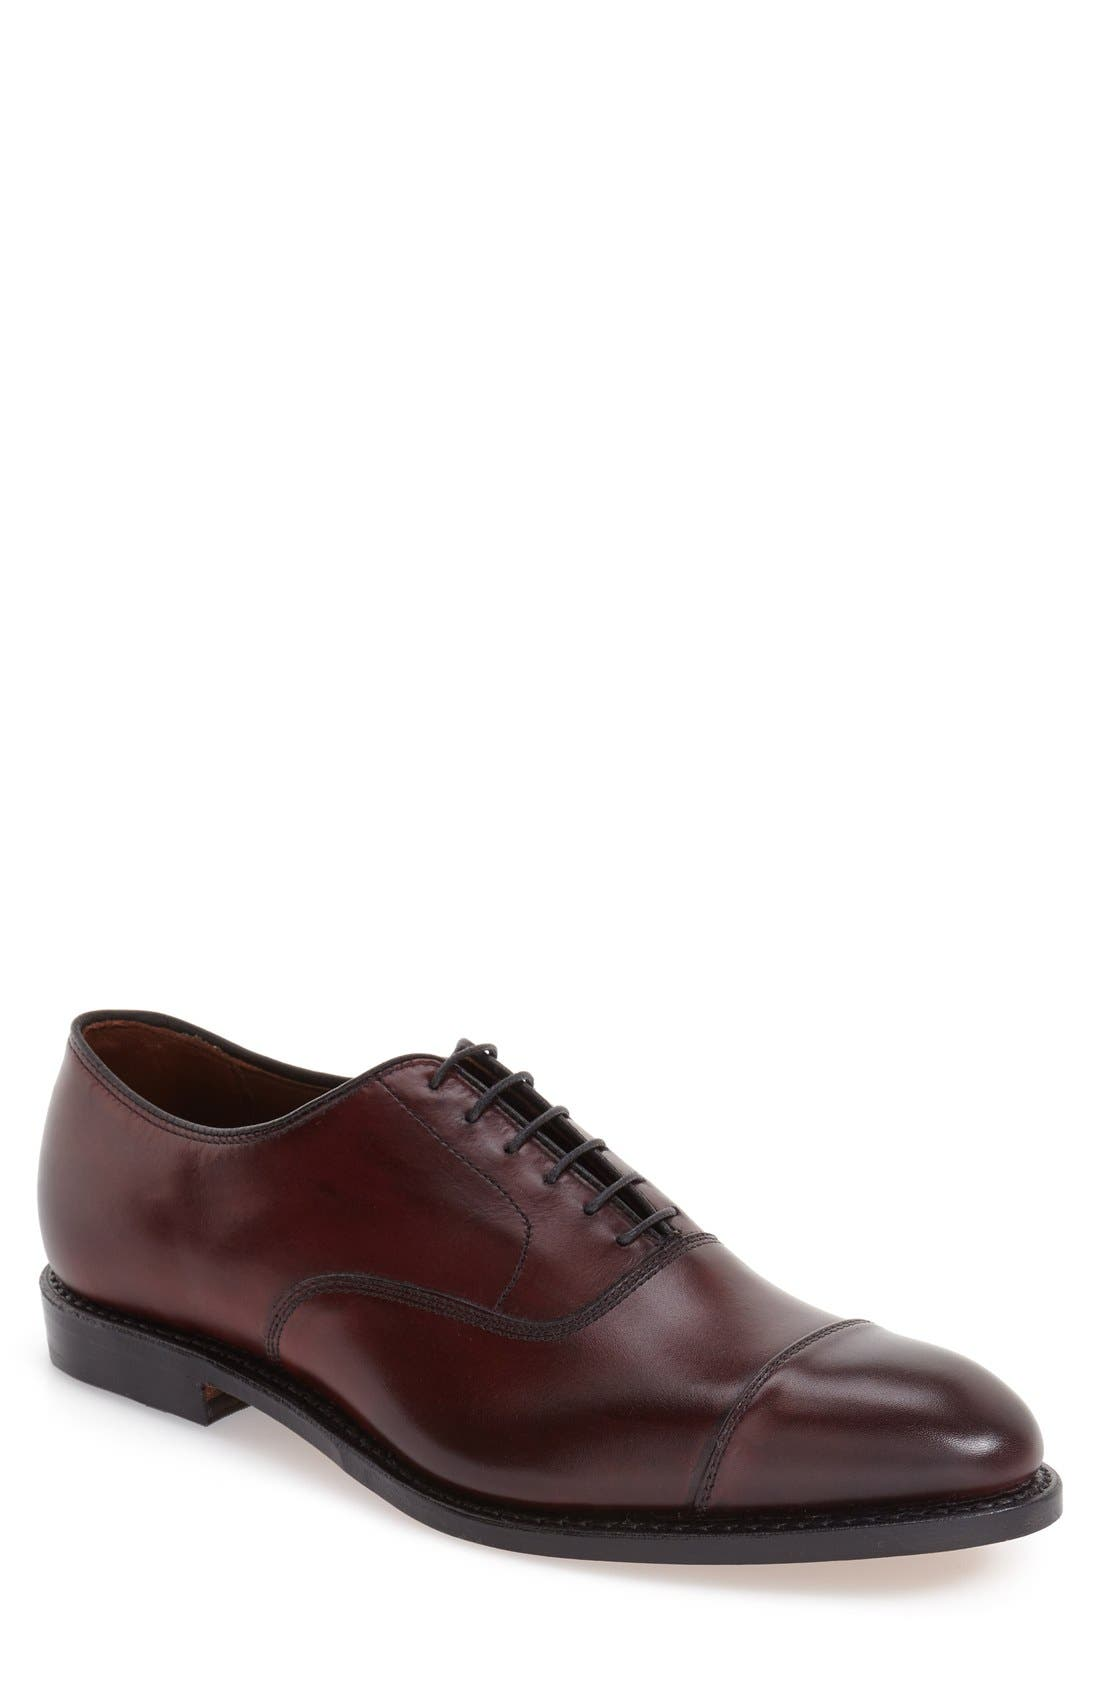 'Park Avenue' Cap Toe Oxford,                         Main,                         color, Oxblood